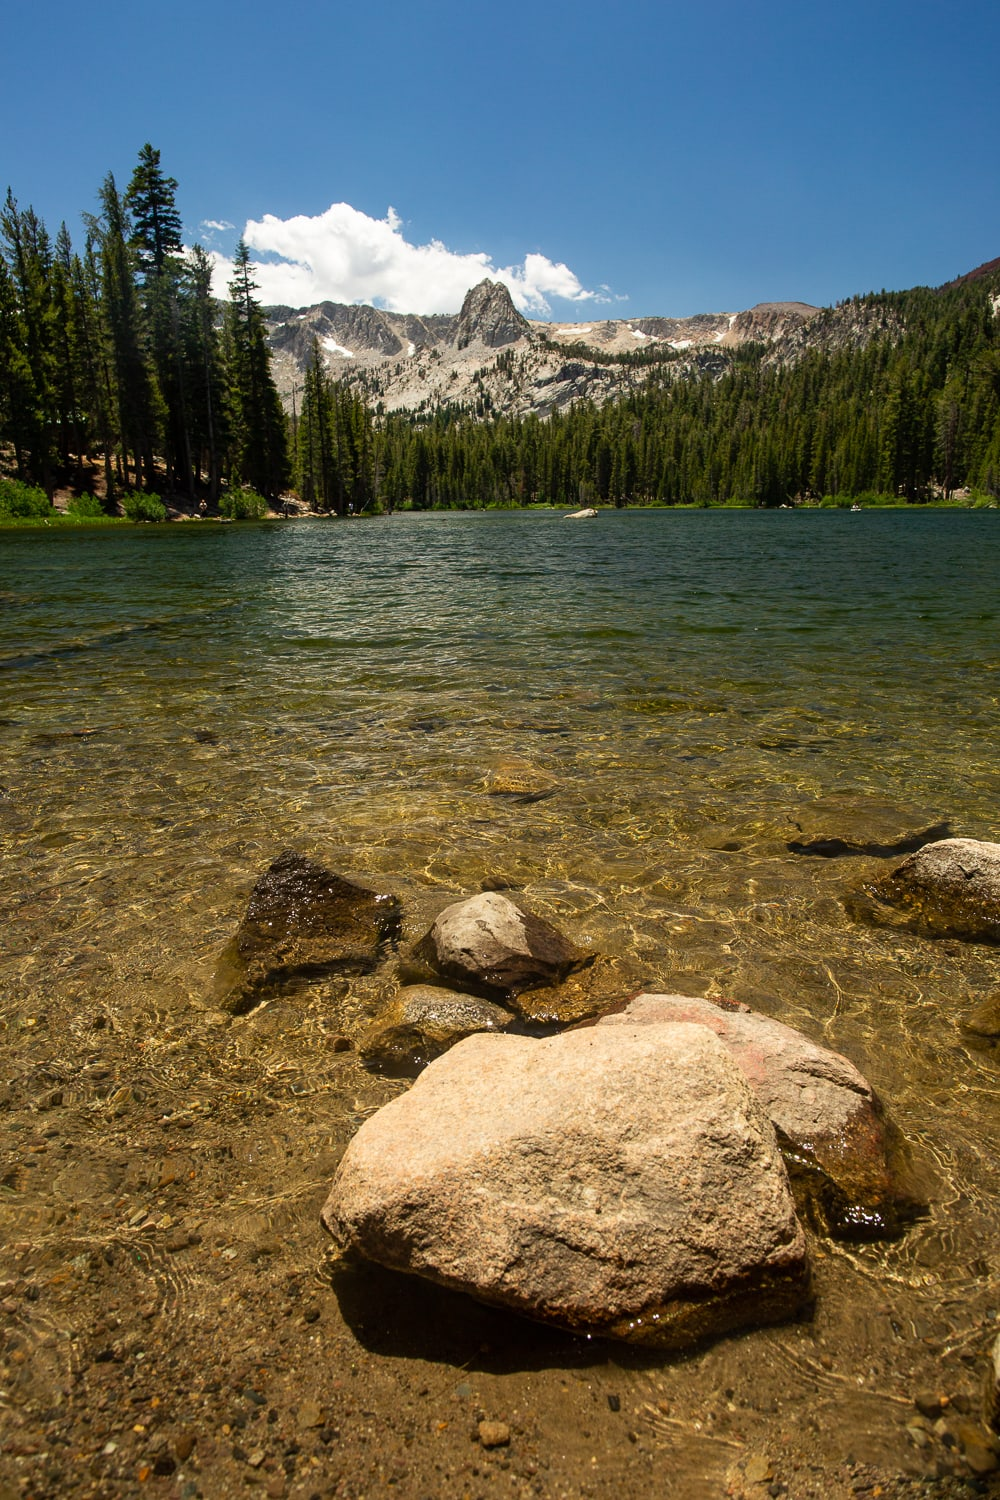 Mamie lake landscape photograph